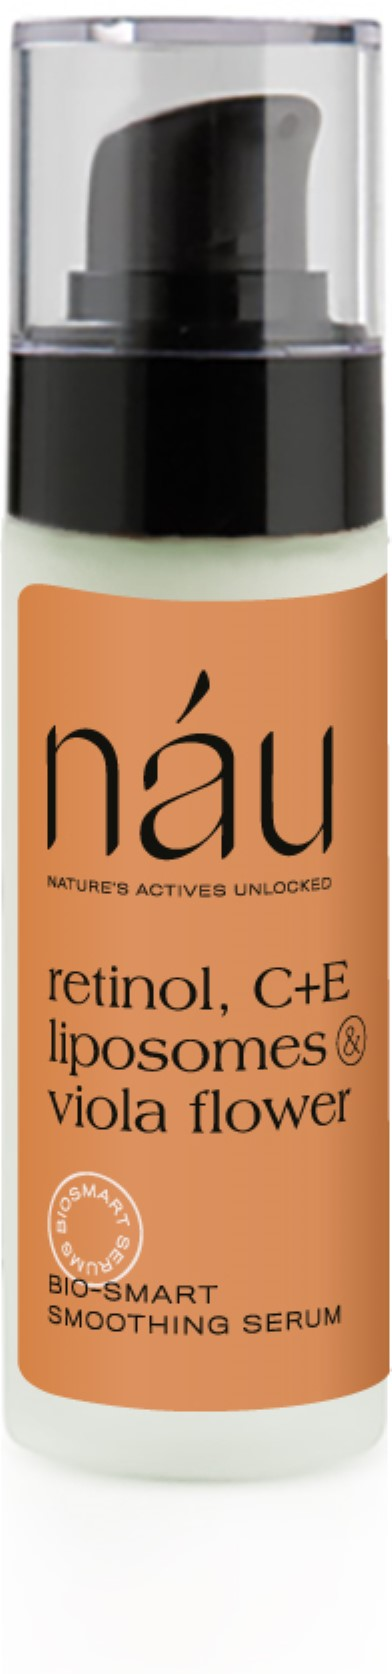 nau Bio-smart Smoothing Serum